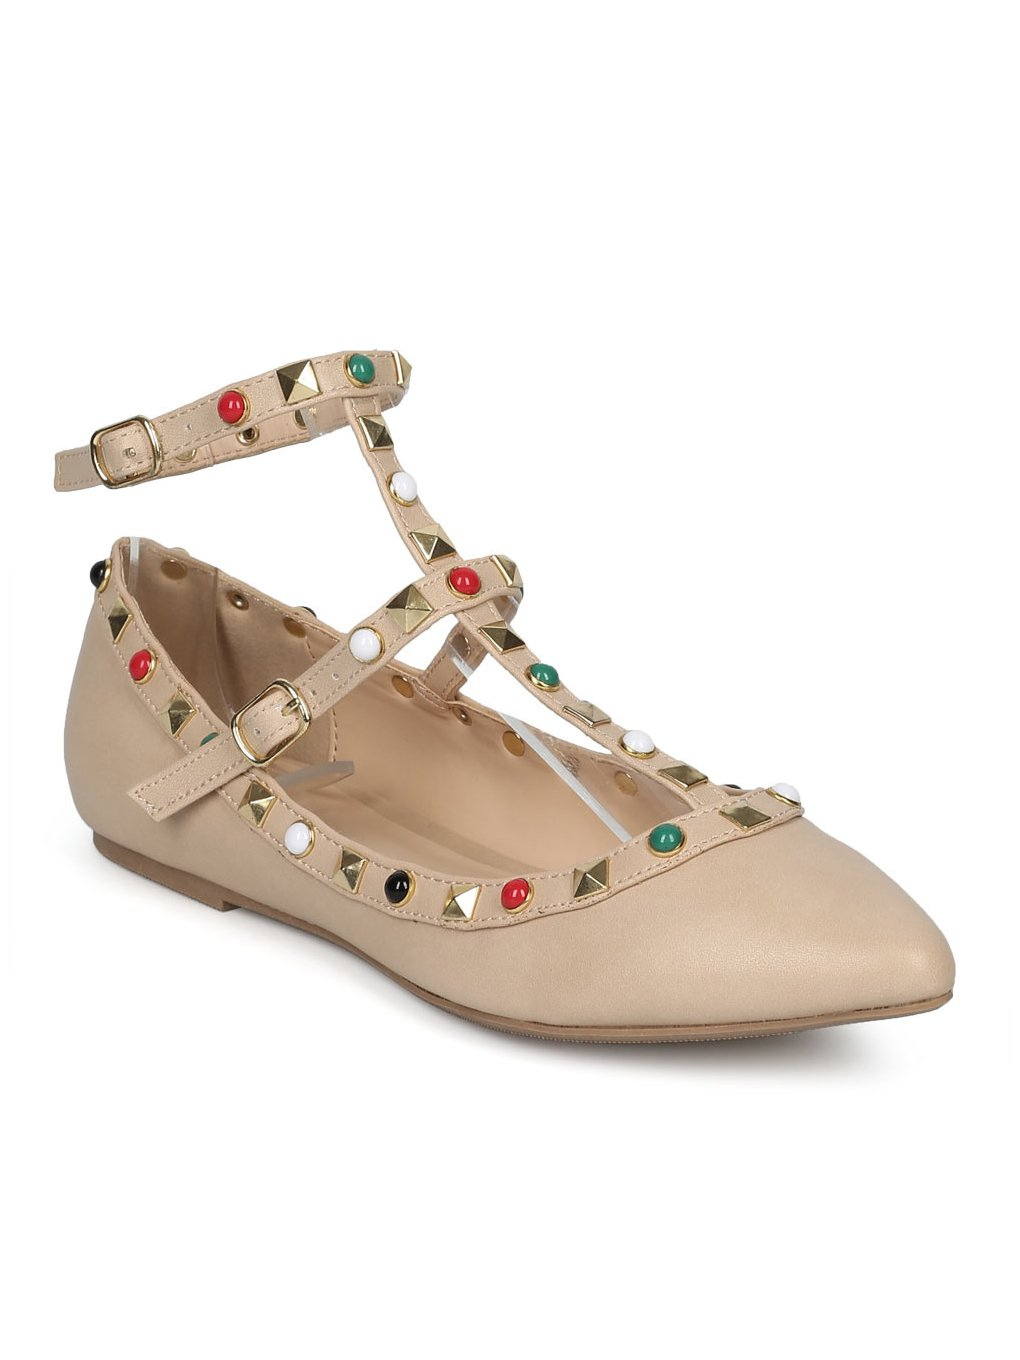 Alrisco Women Leatherette Pointy Toe Studded and Beaded Ankle Strap Flat HD69 - Natural Leatherette (Size: 8.5)